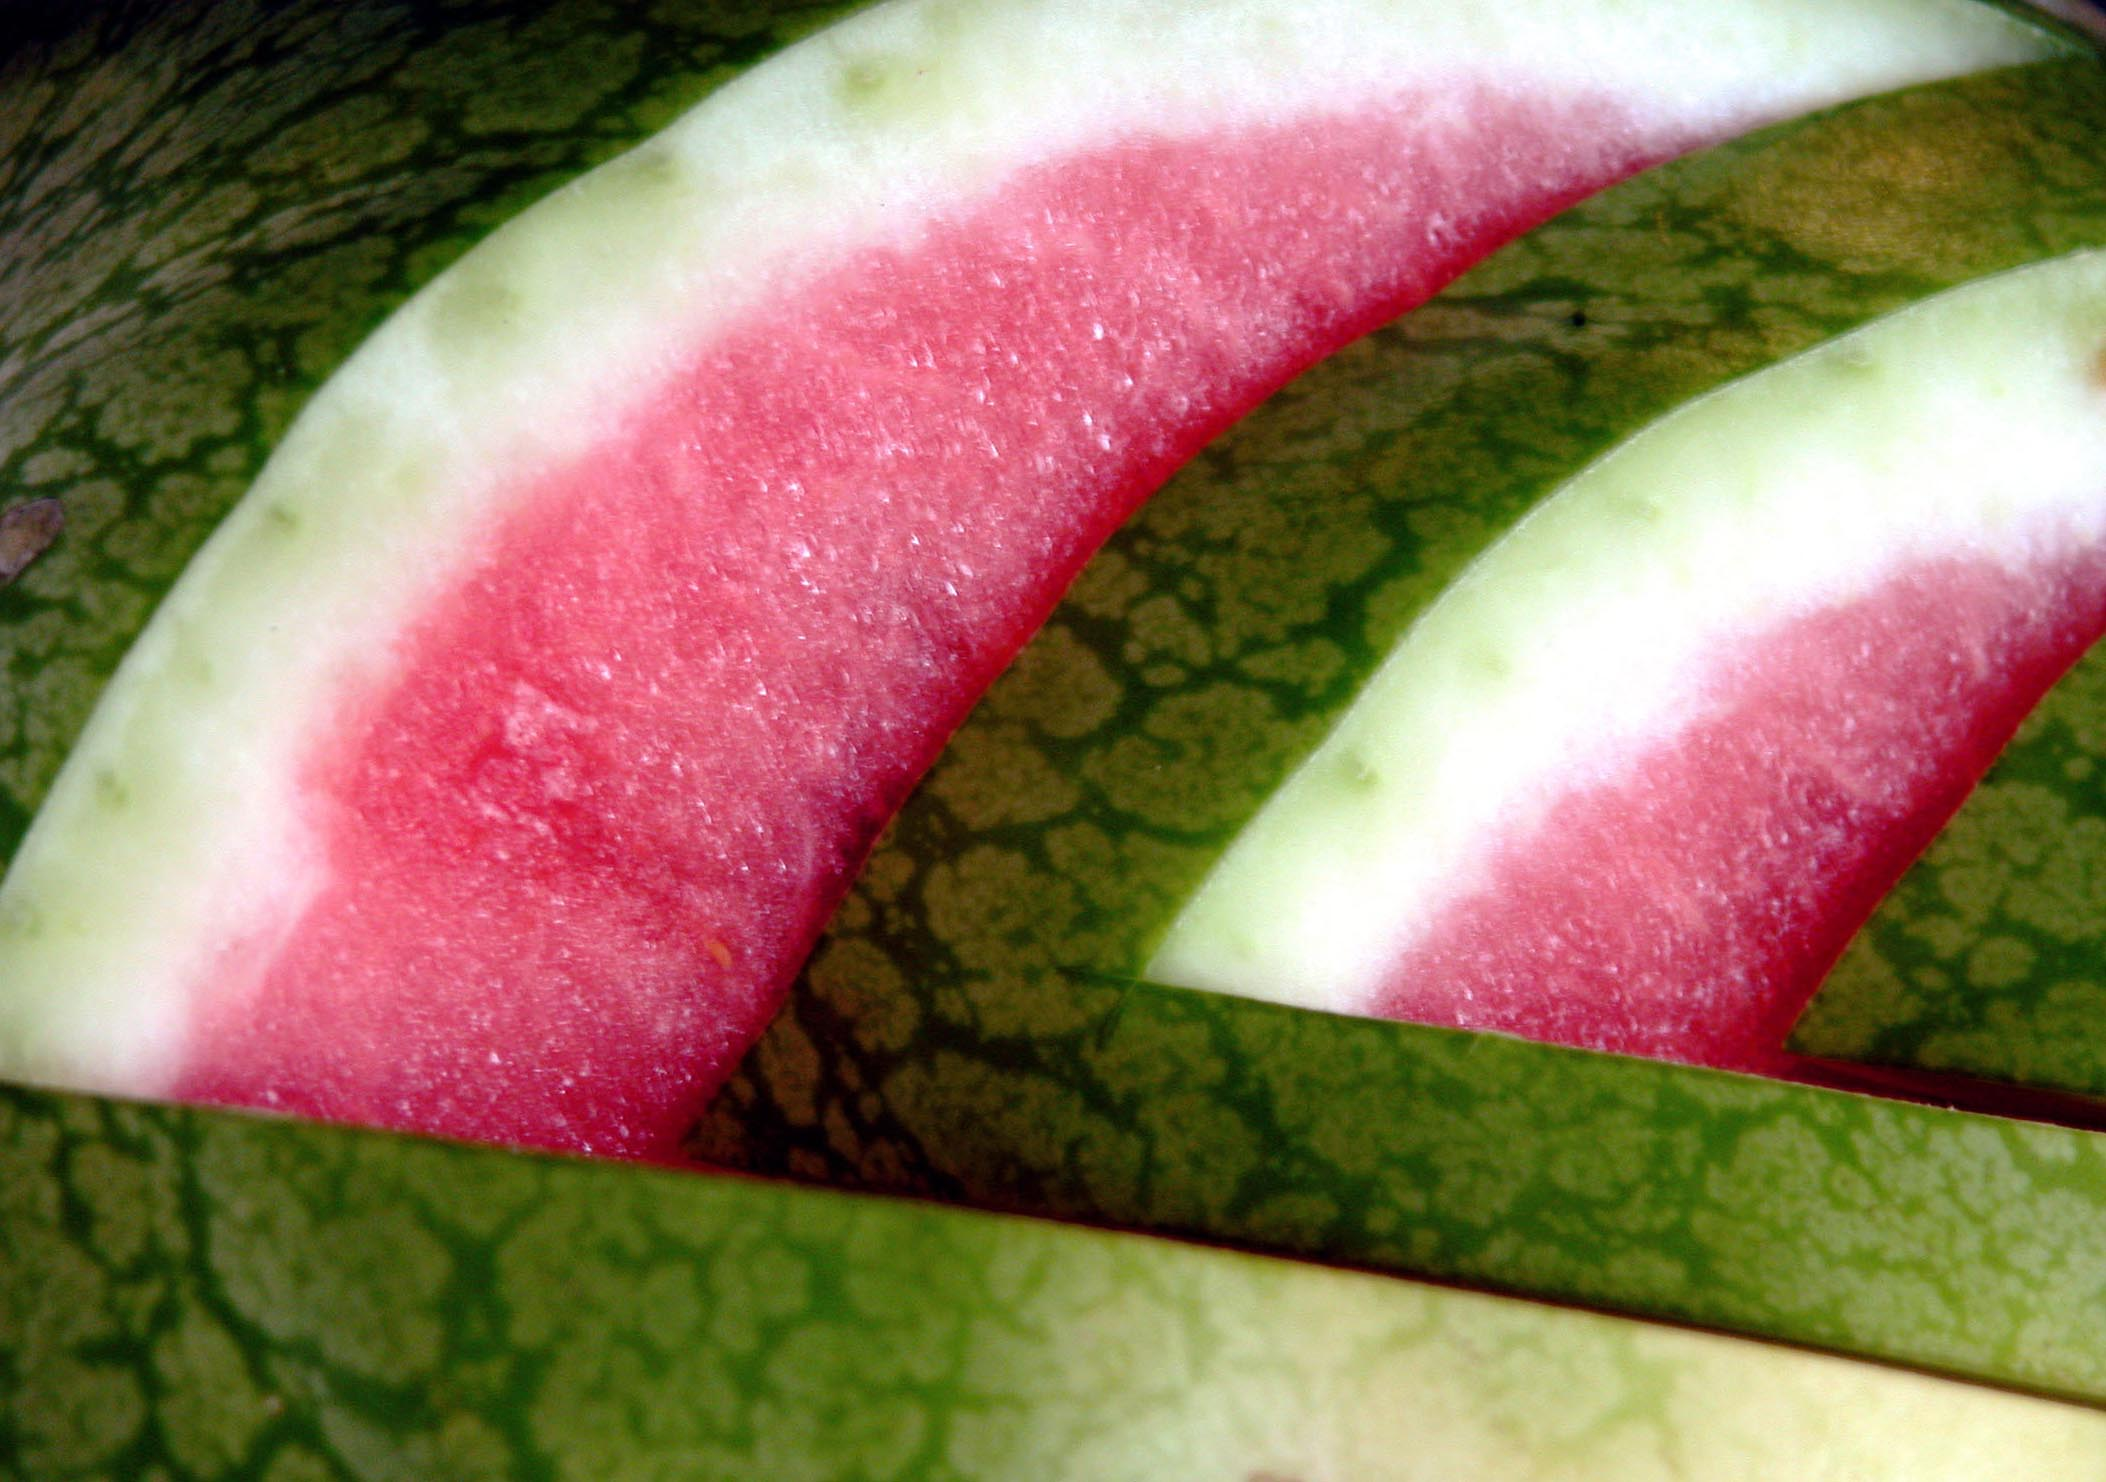 closeup of watermelon helping to illustrate the benefits of watermelon